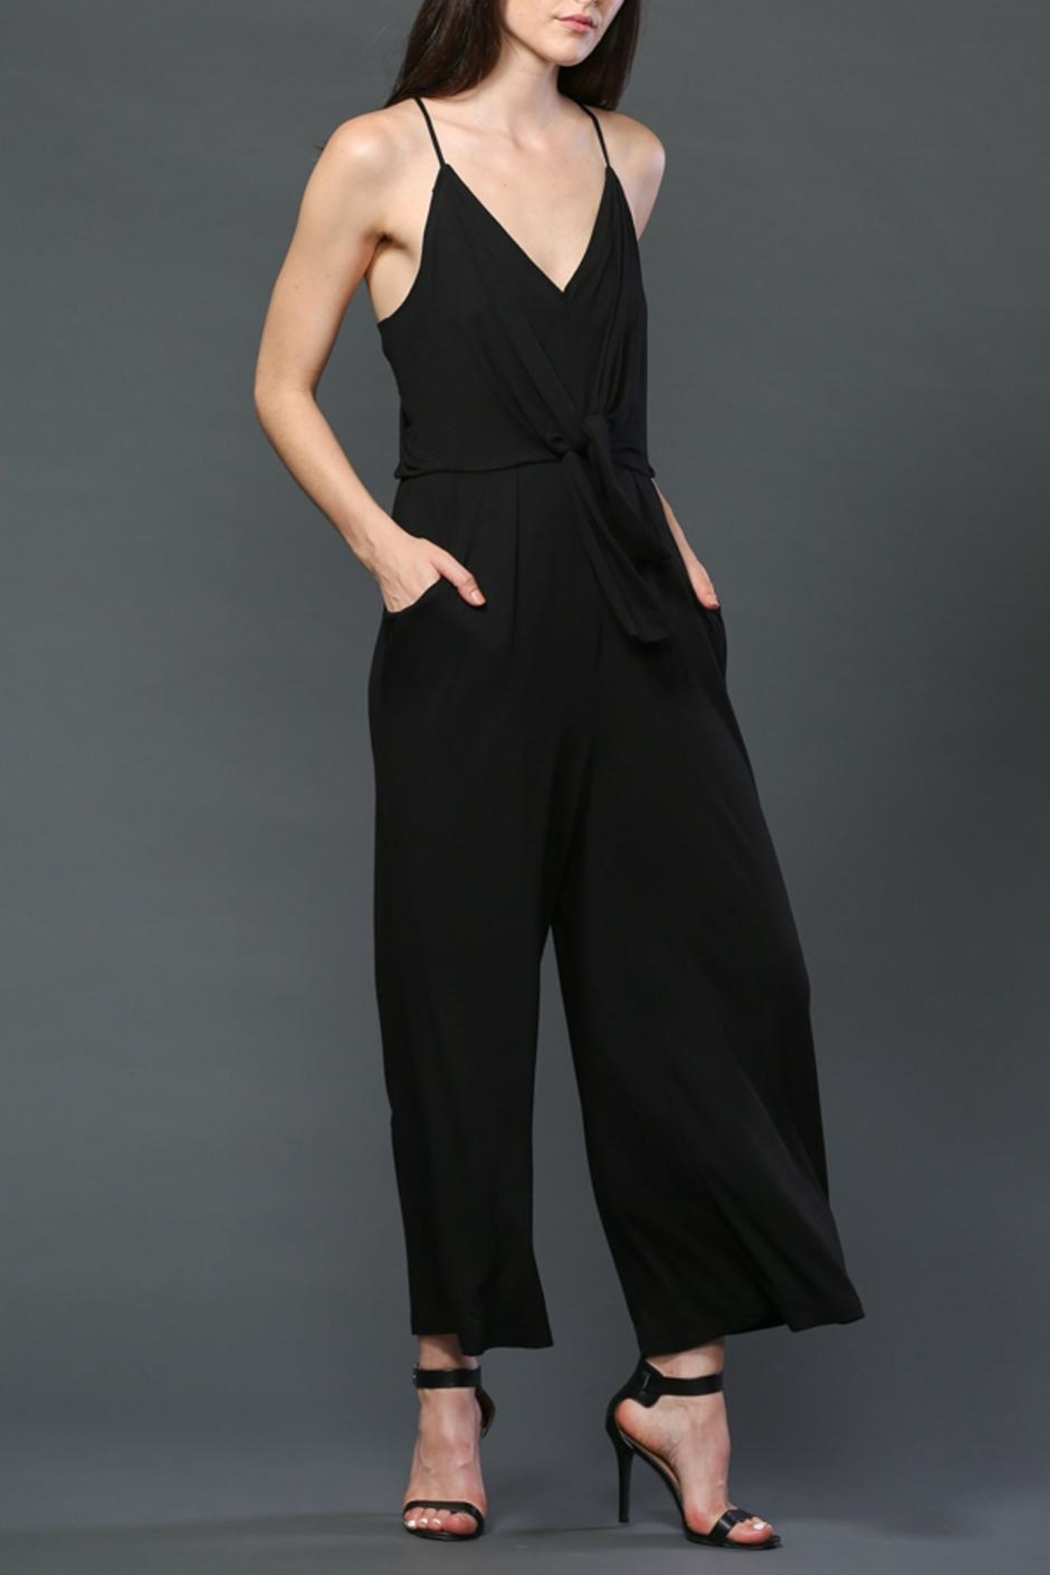 FATE by LFD Tie Front Romper - Main Image